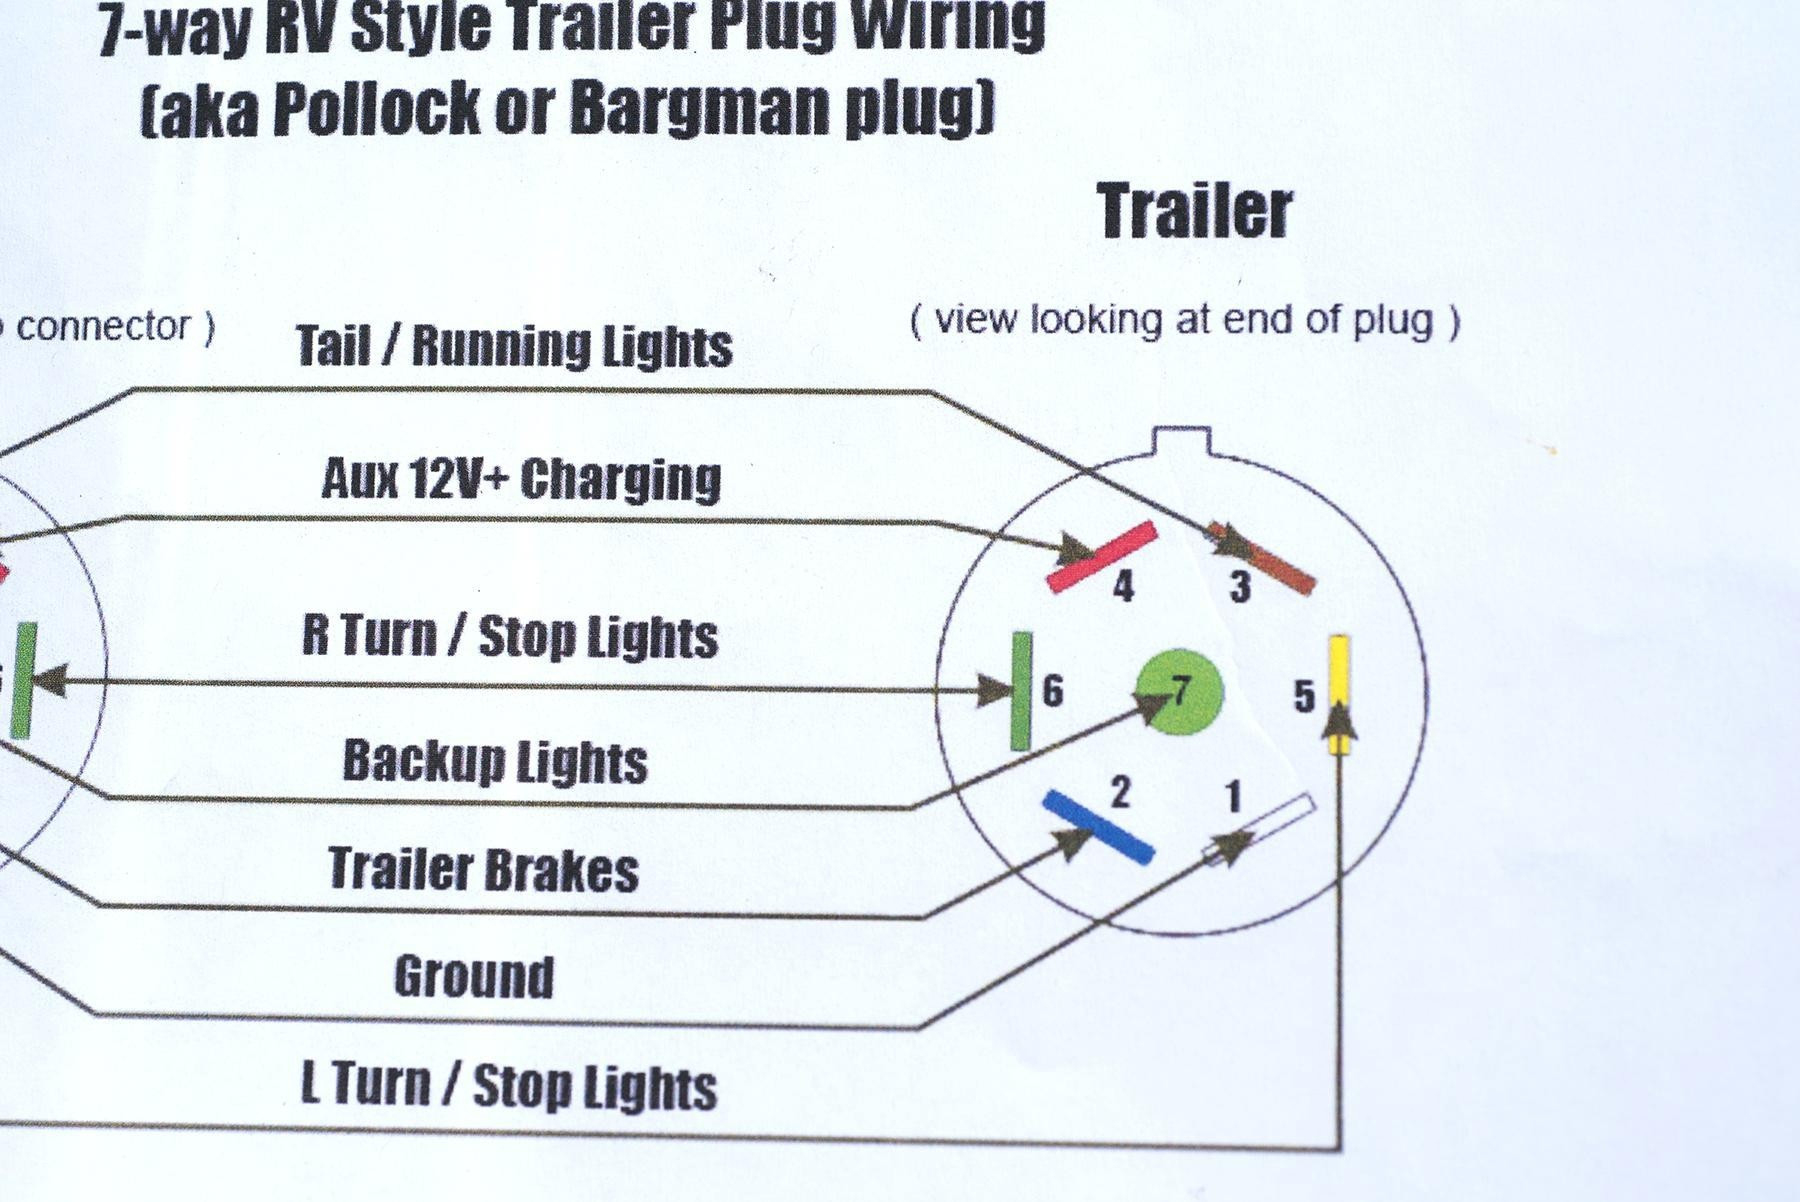 7 Pin Rv Wiring - Data Wiring Diagram Detailed - 7 Pin Rv Trailer Wiring Diagram